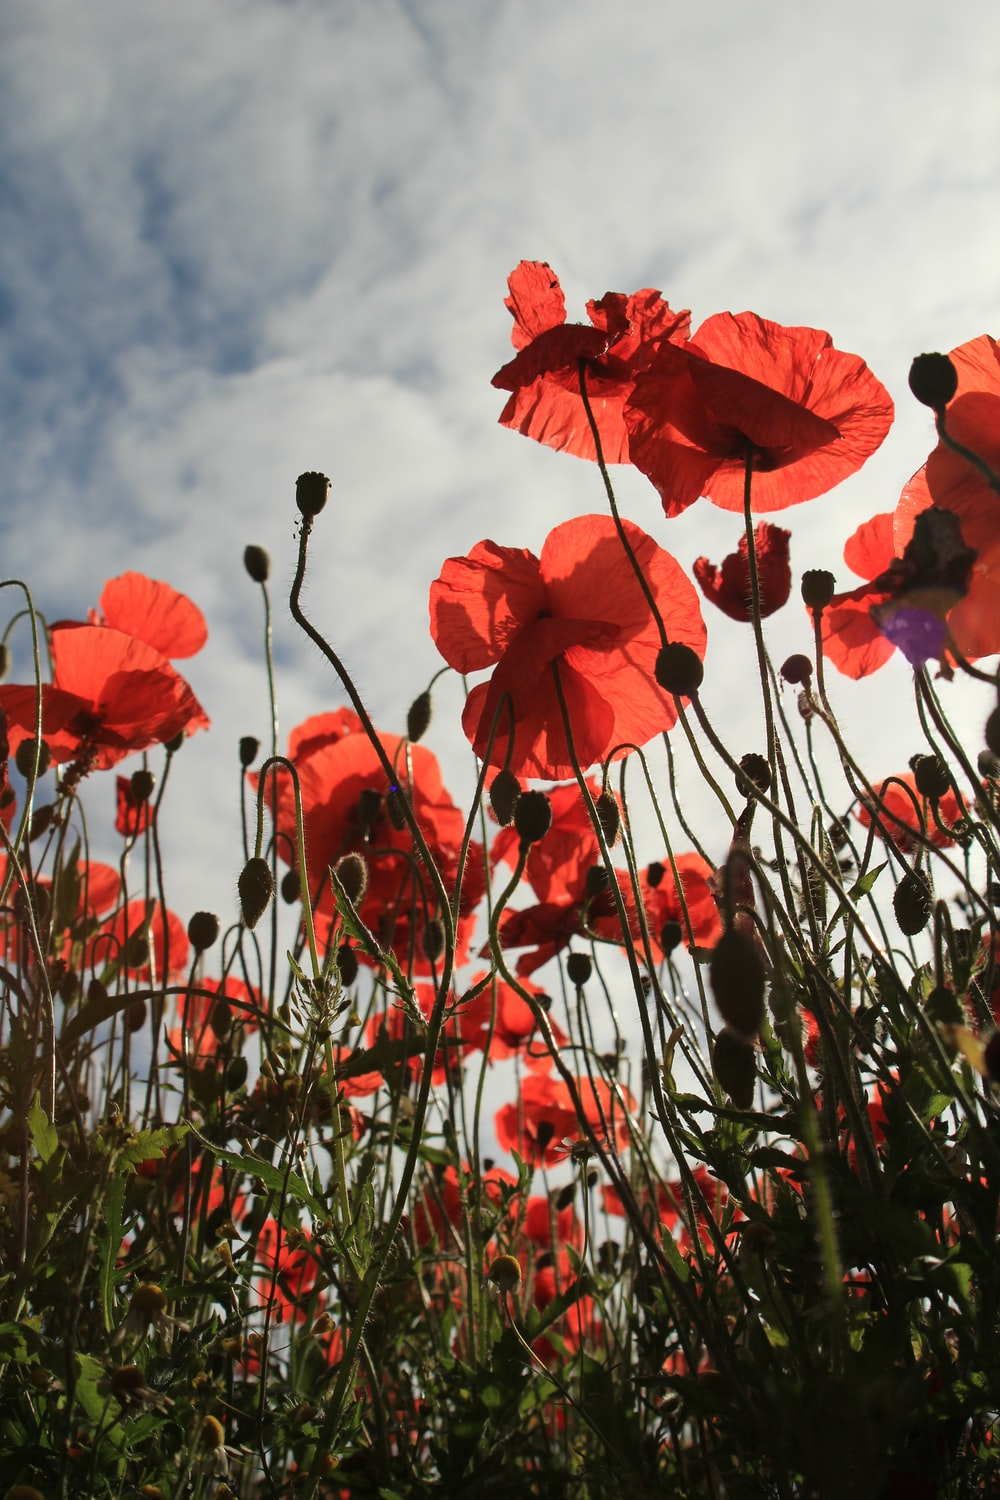 Poppies Photo By Laura Goodsell Laurag82 On Unsplash